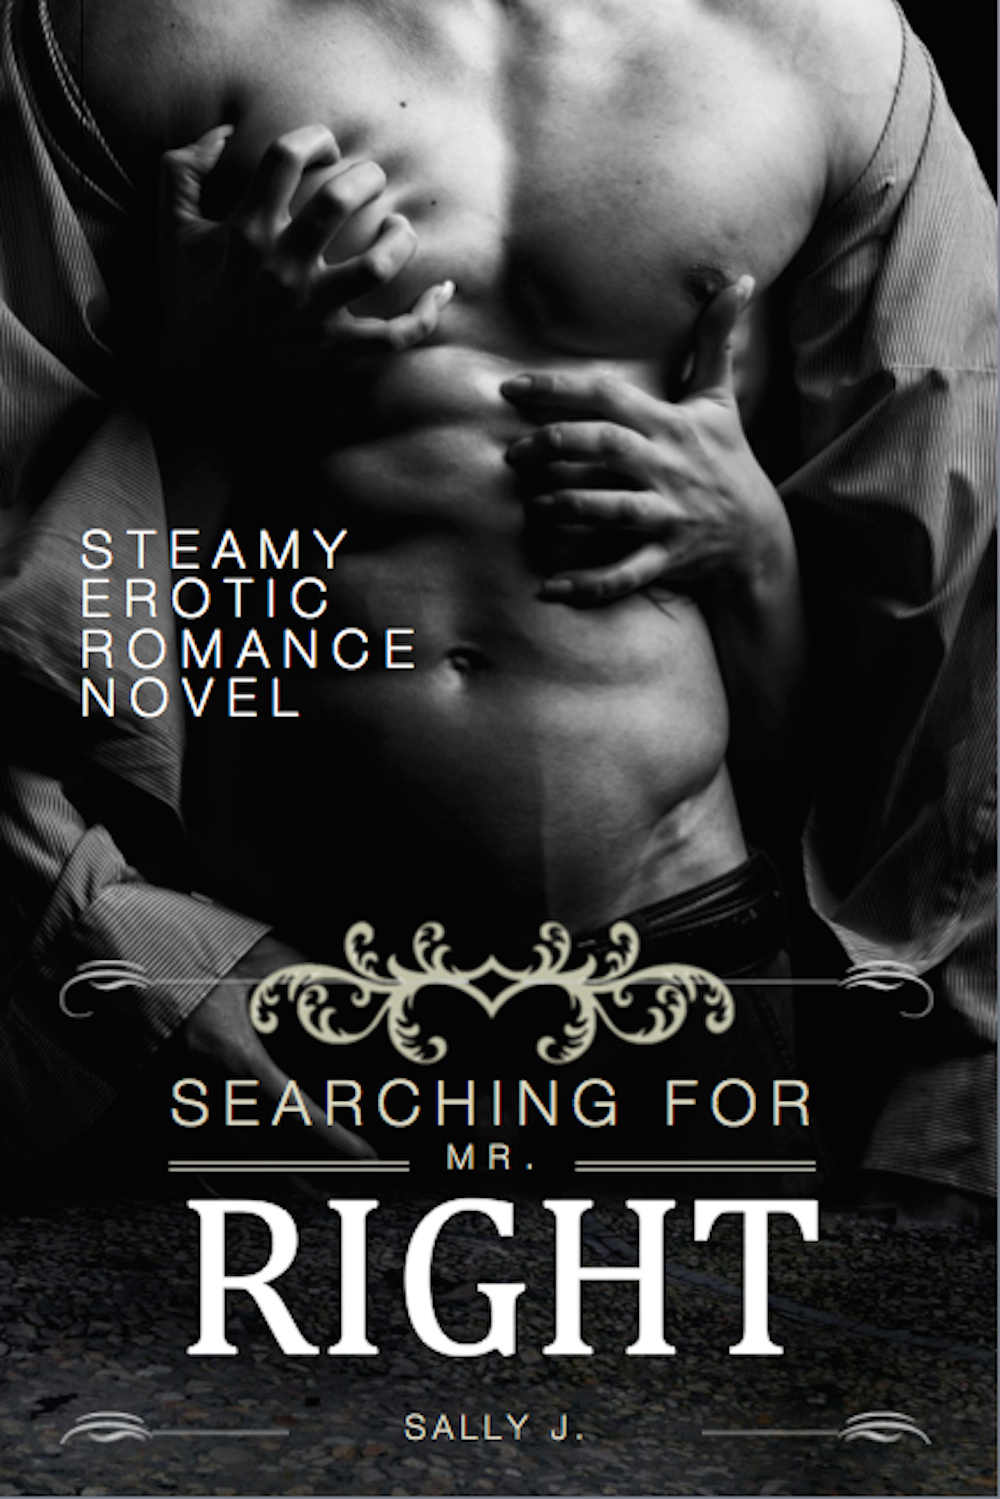 Searching For Mr. Right: Steamy Erotic Romance Novel (Erotic Romance, Romance, Love Affair, Love Story) by Sally J.